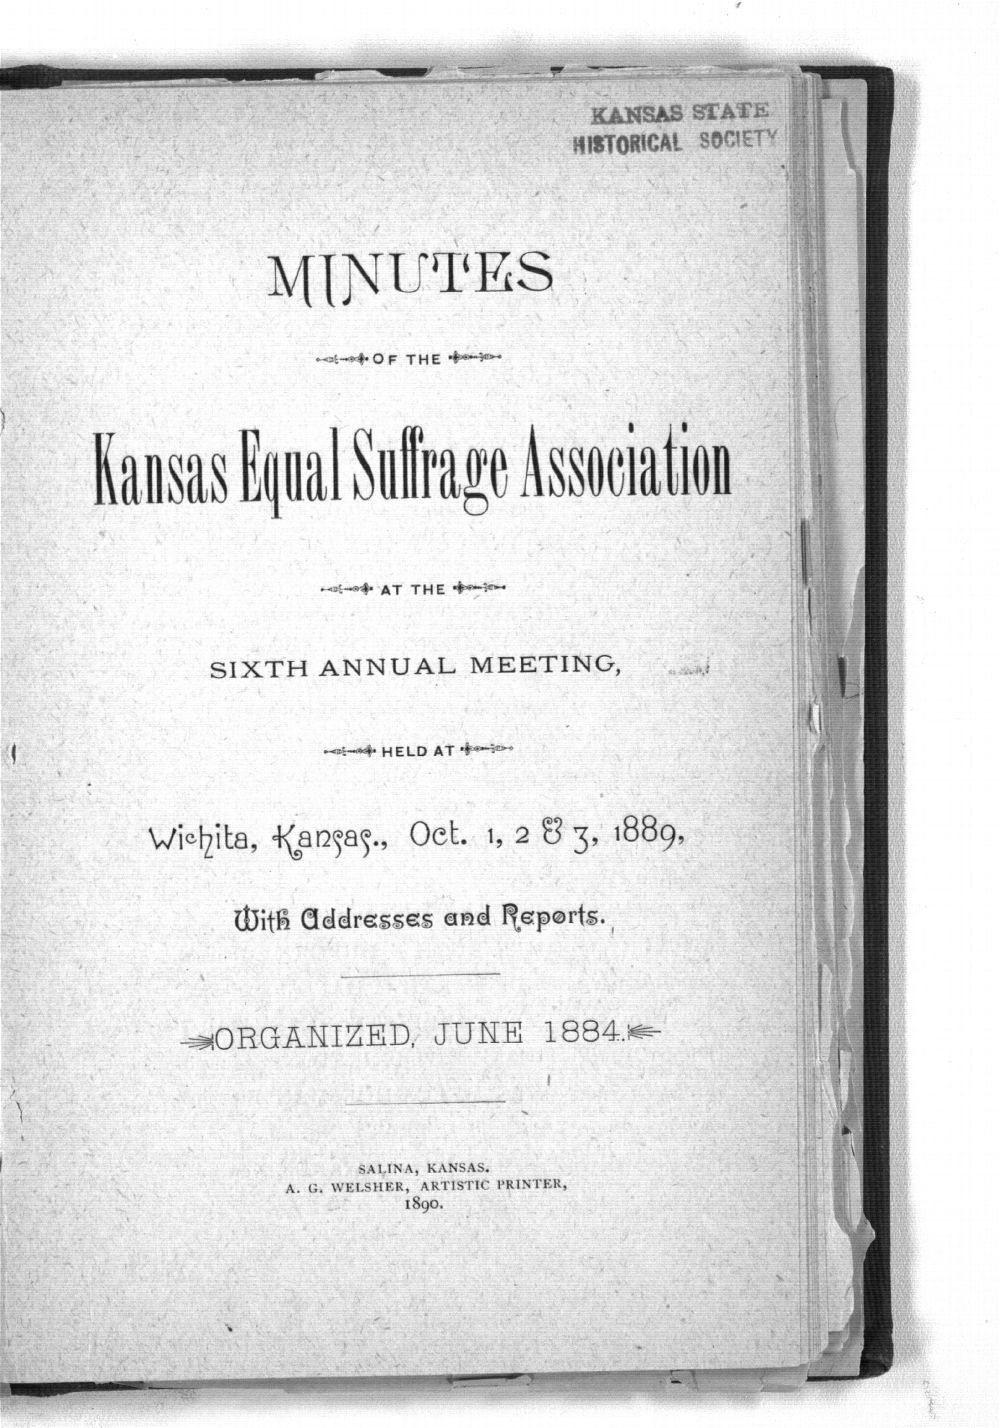 Minutes of the Kansas Equal Suffrage Association at the sixth annual meeting in 1889 - Title Page